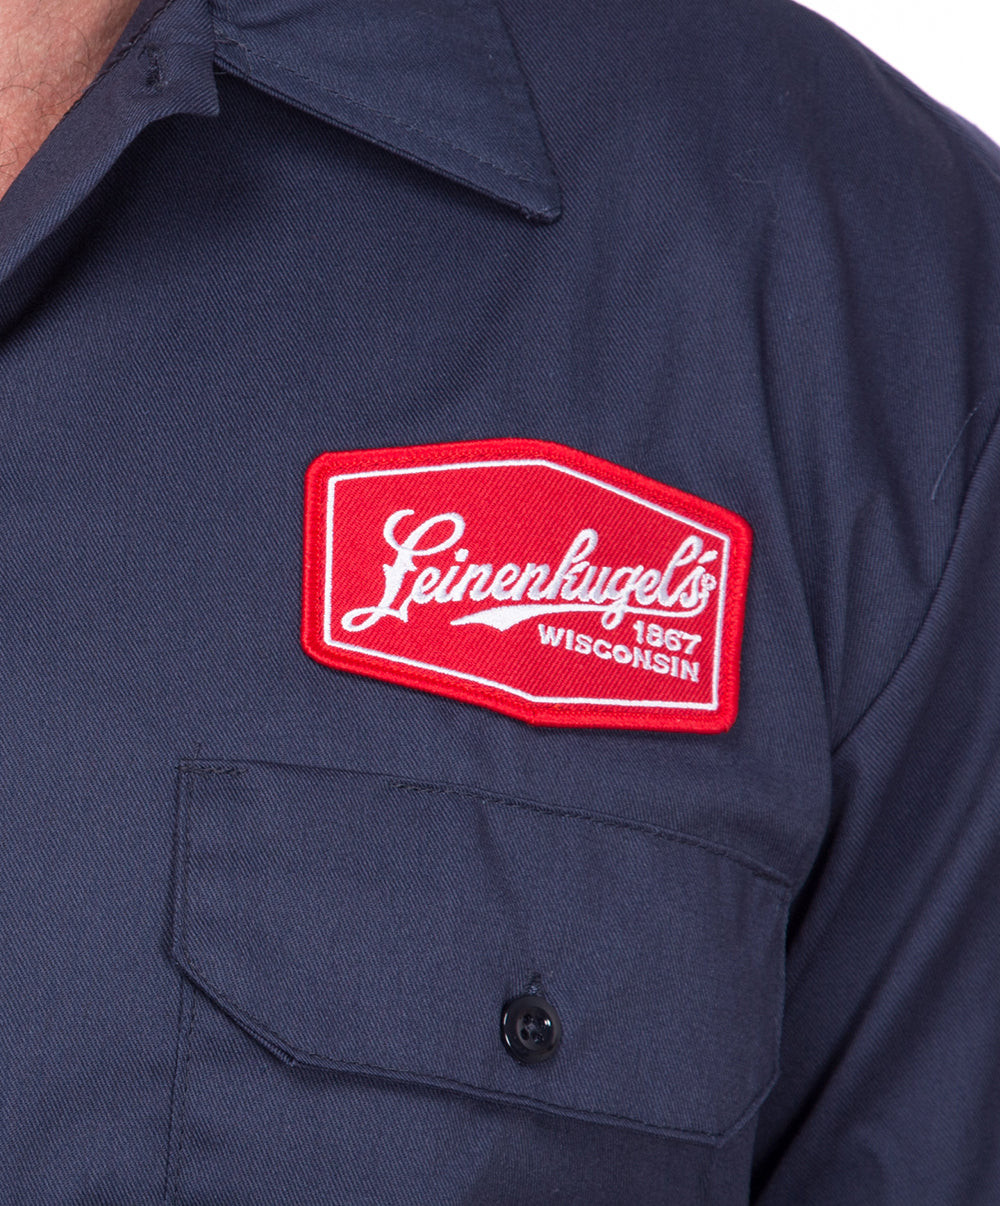 NORMAN PATCH WORK SHIRT